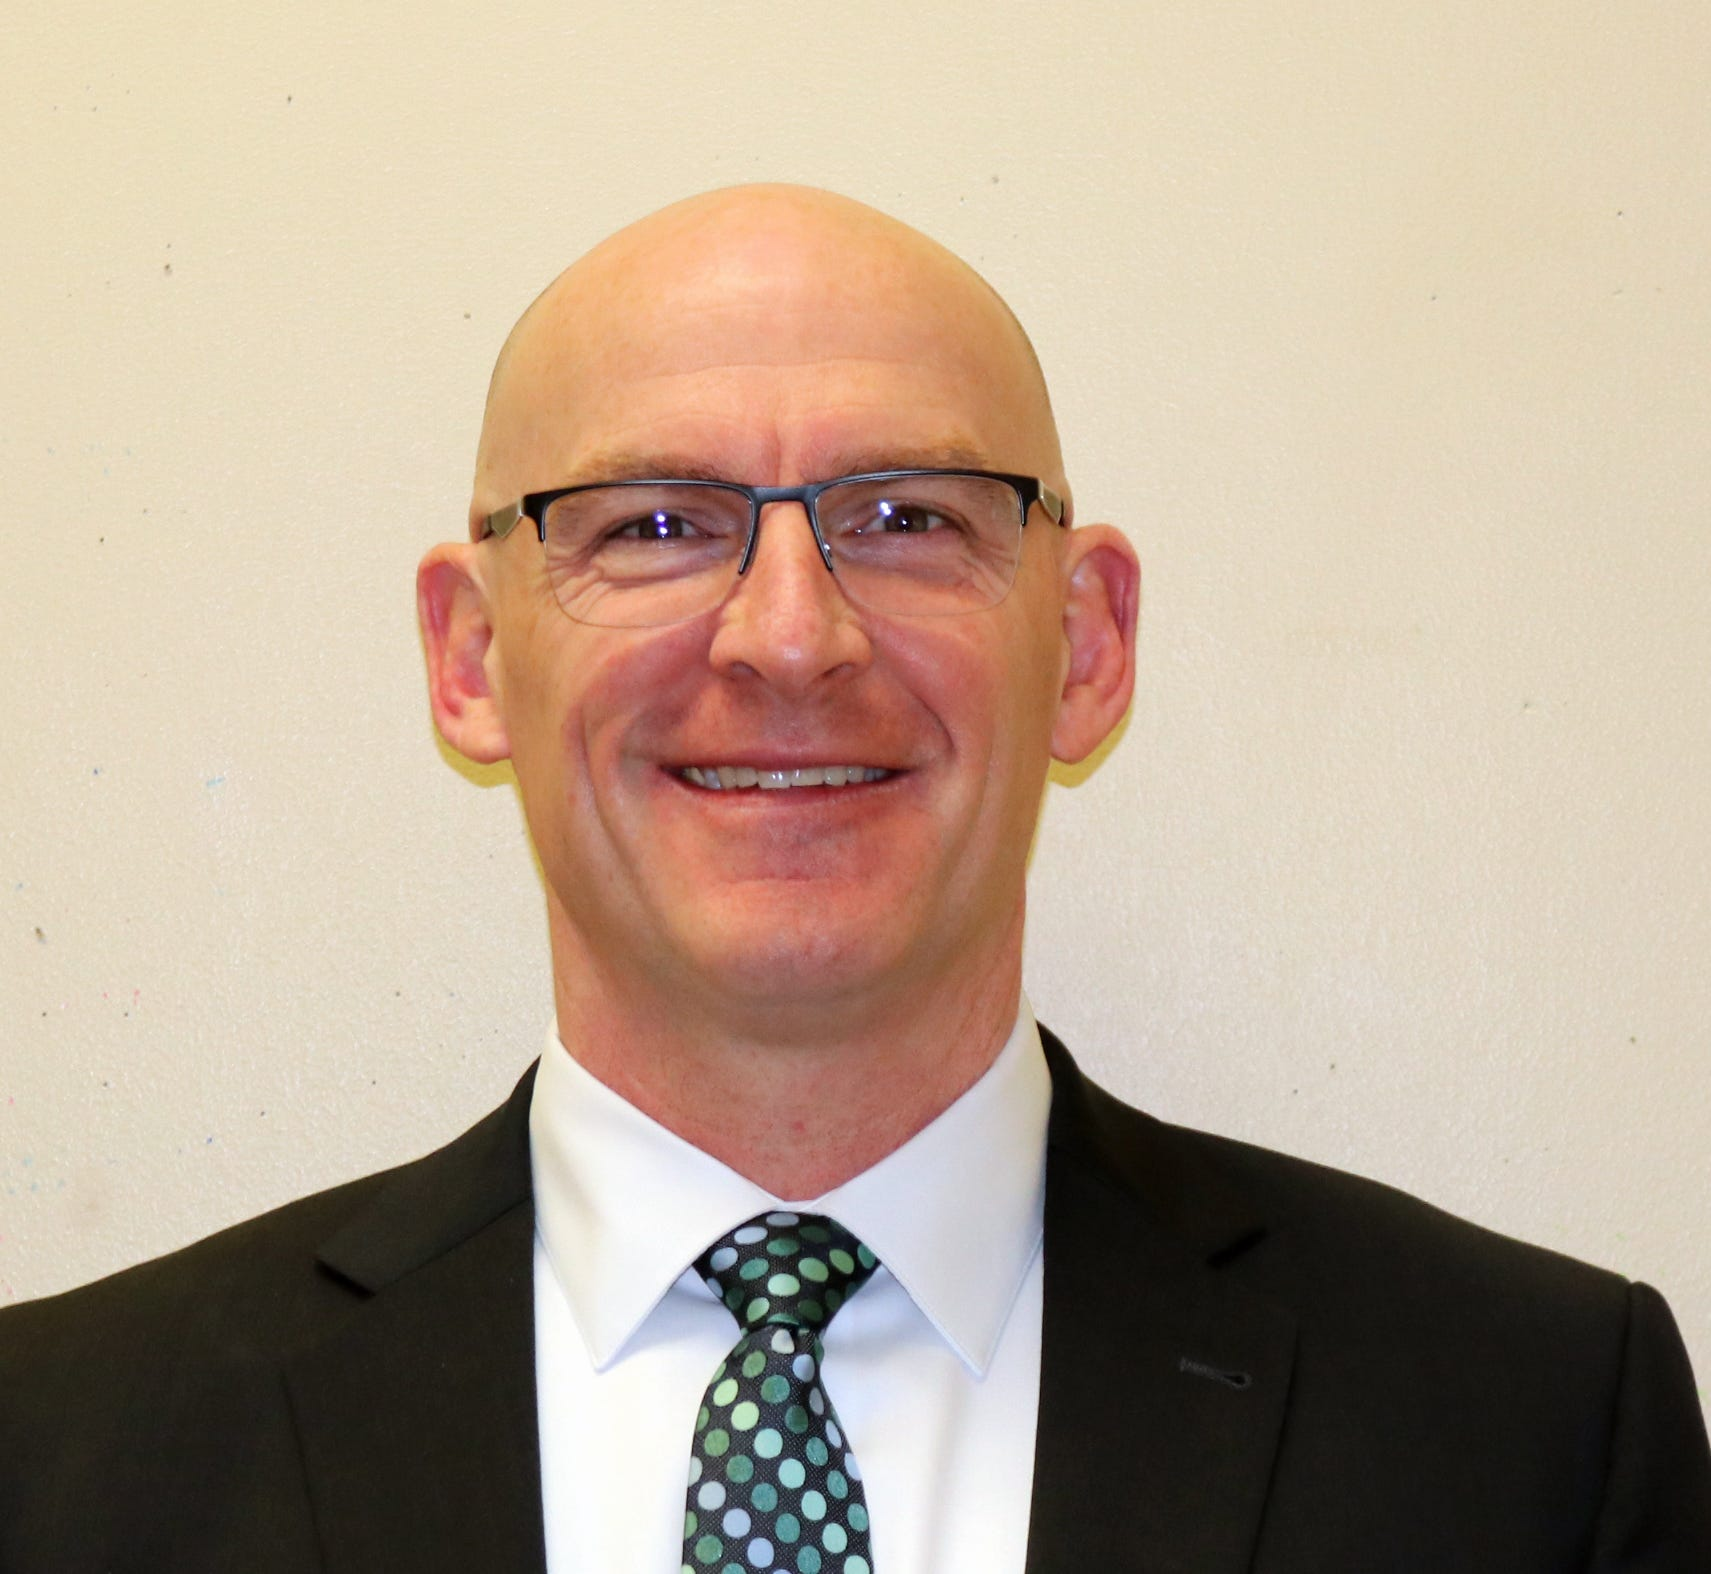 Tim Winter is a candidate for the position of South Kitsap School District superintendent. The school board announced three finalists on Feb. 25, 2019.